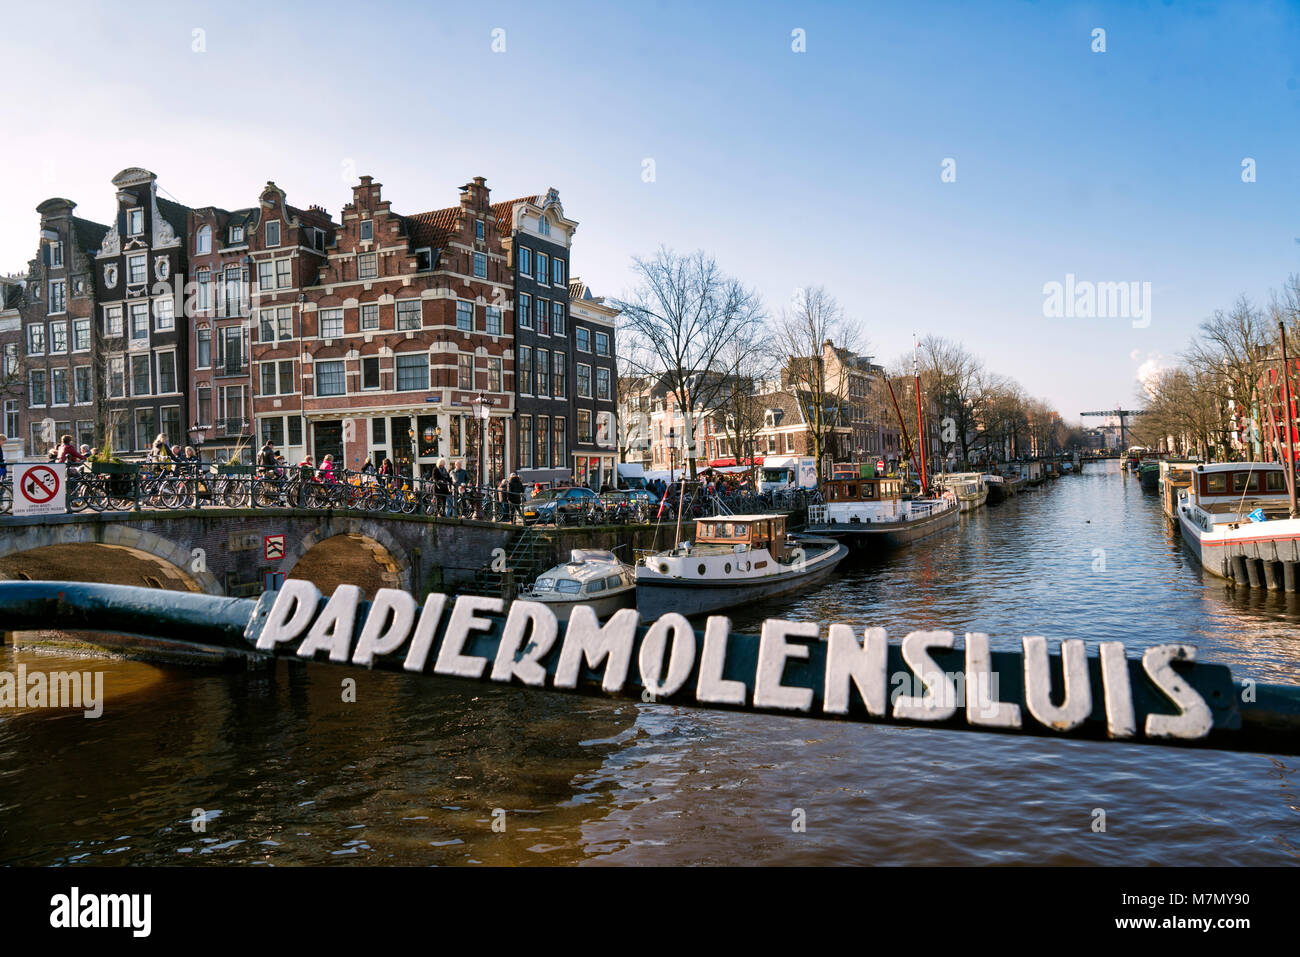 Leaning canal houses on the Prinsengracht / Brouwersgracht, Amsterdam, The Netherlands - Stock Image